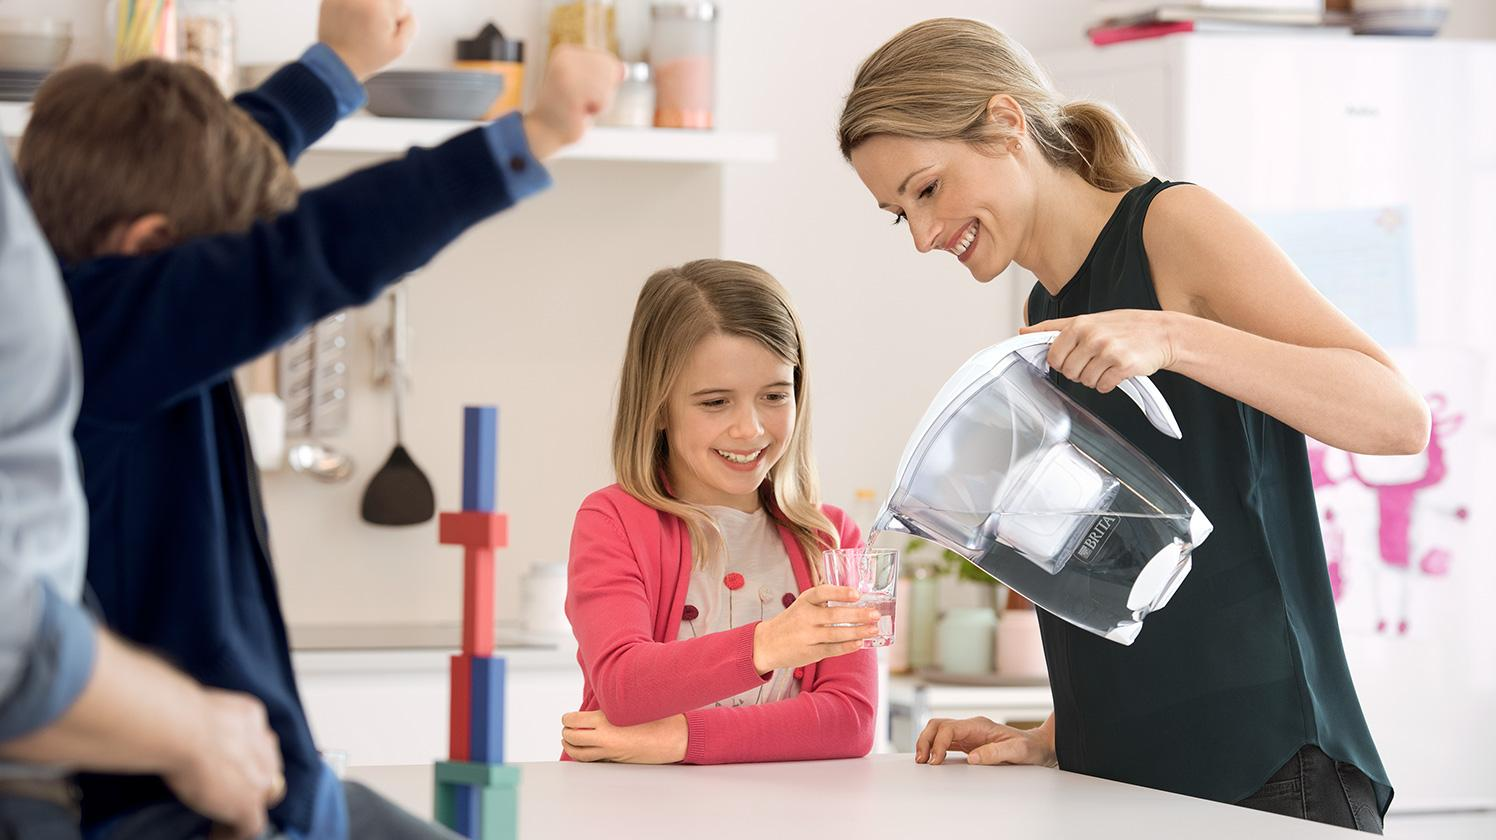 BRITA personal hydration needs family in kitchen